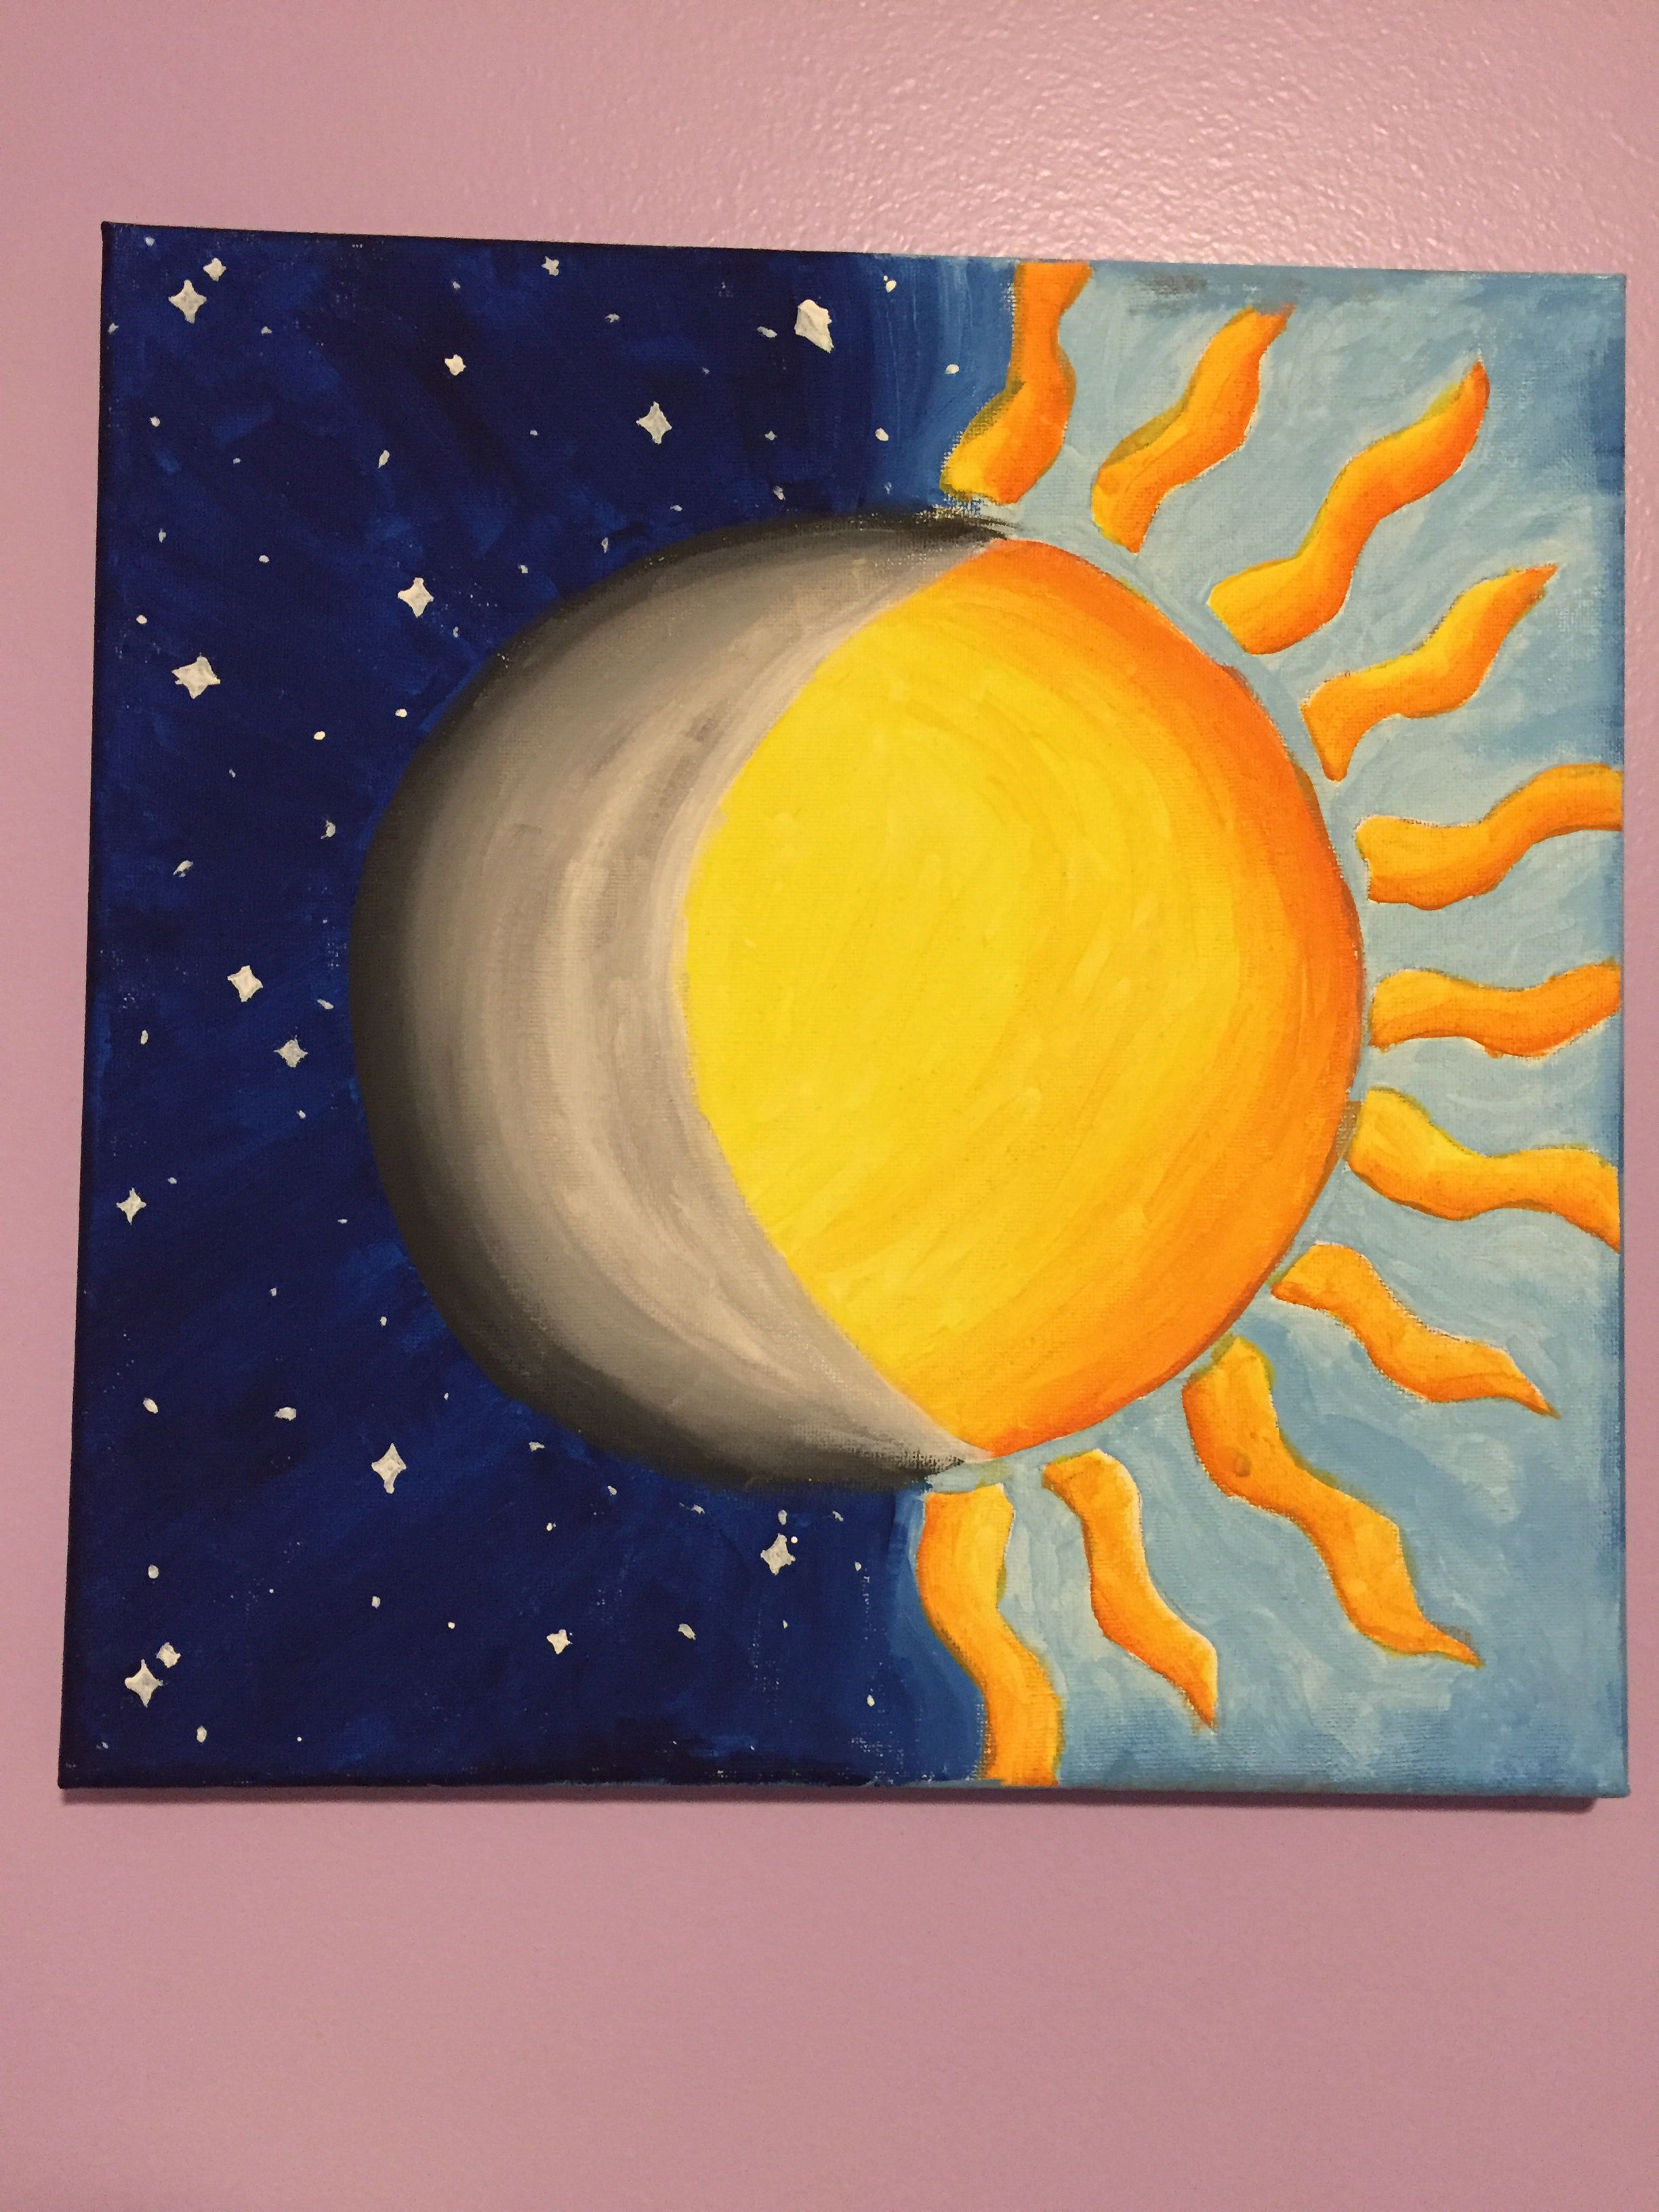 Half sun half moon painting idea my art pinterest for Watercolor ideas easy